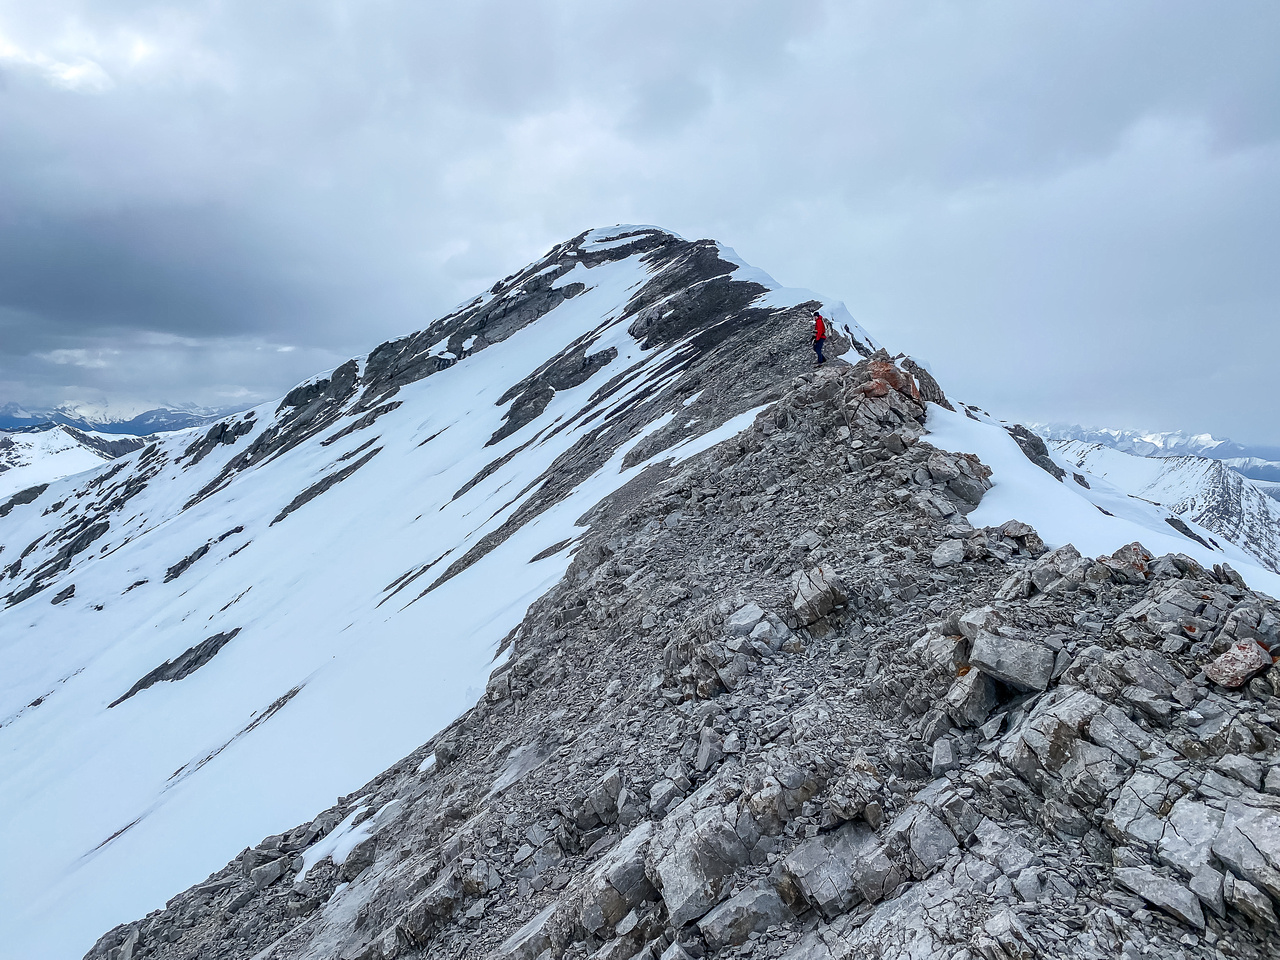 The final ascent to Canary Peak.